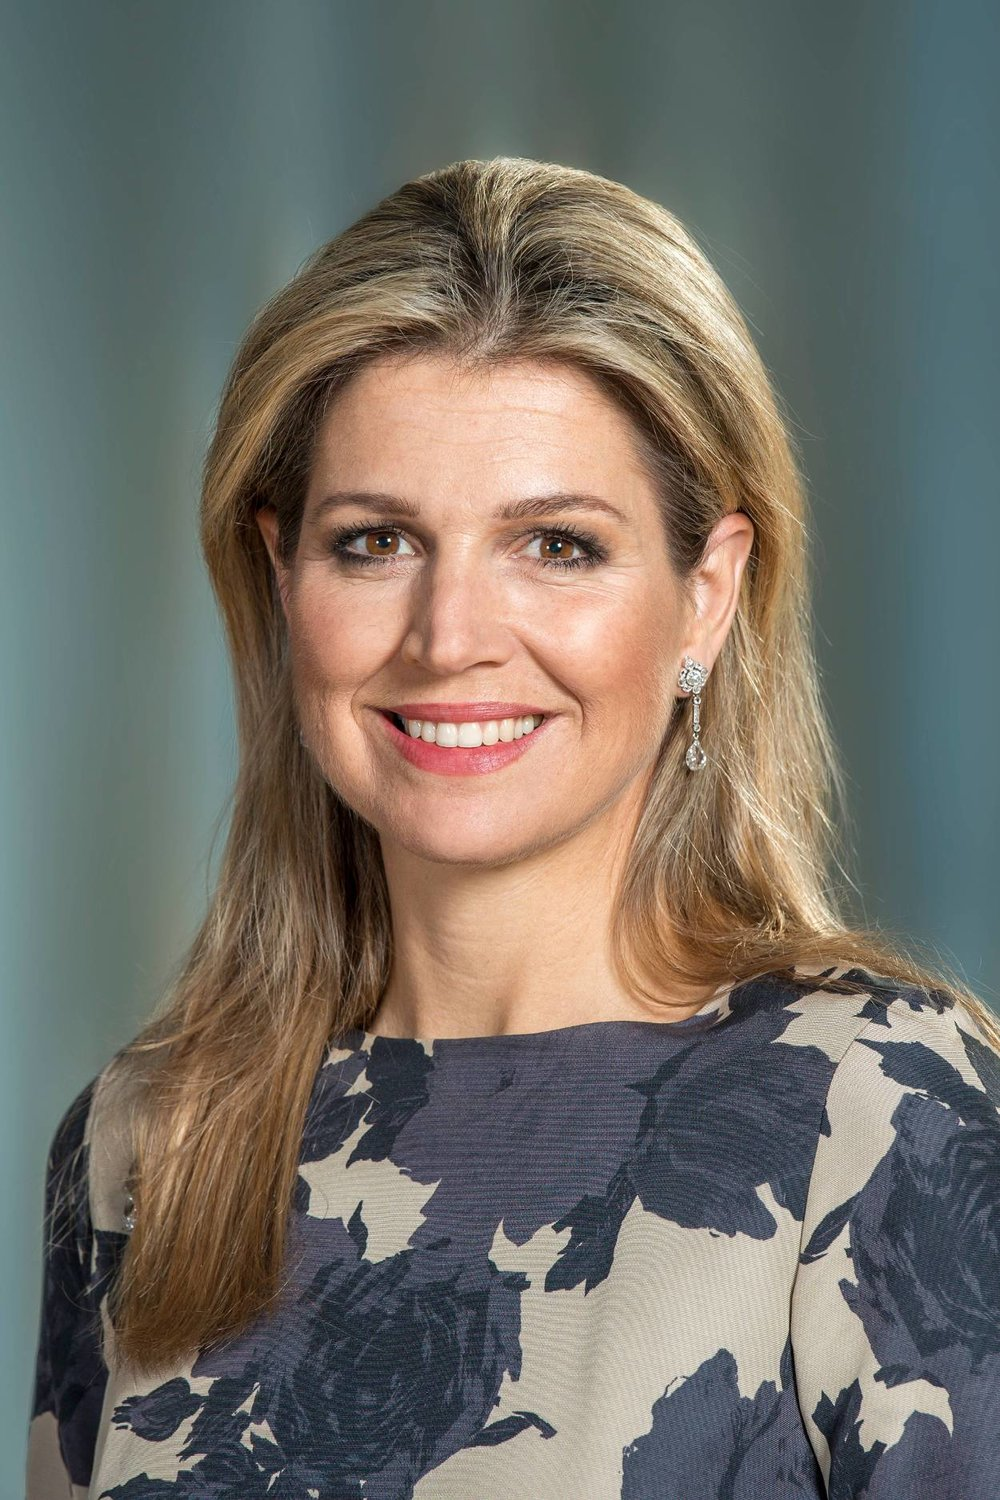 Queen Máxima - Máxima Zorreguieta Cerruti was born to Jorge Zorreguieta and María del Carmen Cerruti Carricart in Buenos Aires, Argentina, on May 17, 1971. She has two brothers and a sister, as well as two half-sisters through her mother. Máxima was educated at an English language school in Argentina and later attended Pontifical Catholic University of Argentina where she received a bachelor's degree. She earned a master's degree in the U.S.Máxima married then-Prince Willem-Alexander on February 2, 2002. She retained her Argentine citizenship and gained Dutch. She remained a Roman Catholic. The couple has three daughters: Princesses Amalia, Alexia, and Ariane.She became the Queen of the Netherlands upon her husband's ascension in 2013 after the abdication of his mother, Beatrix. (Photo: Jeroen van der Meyde/RVD)